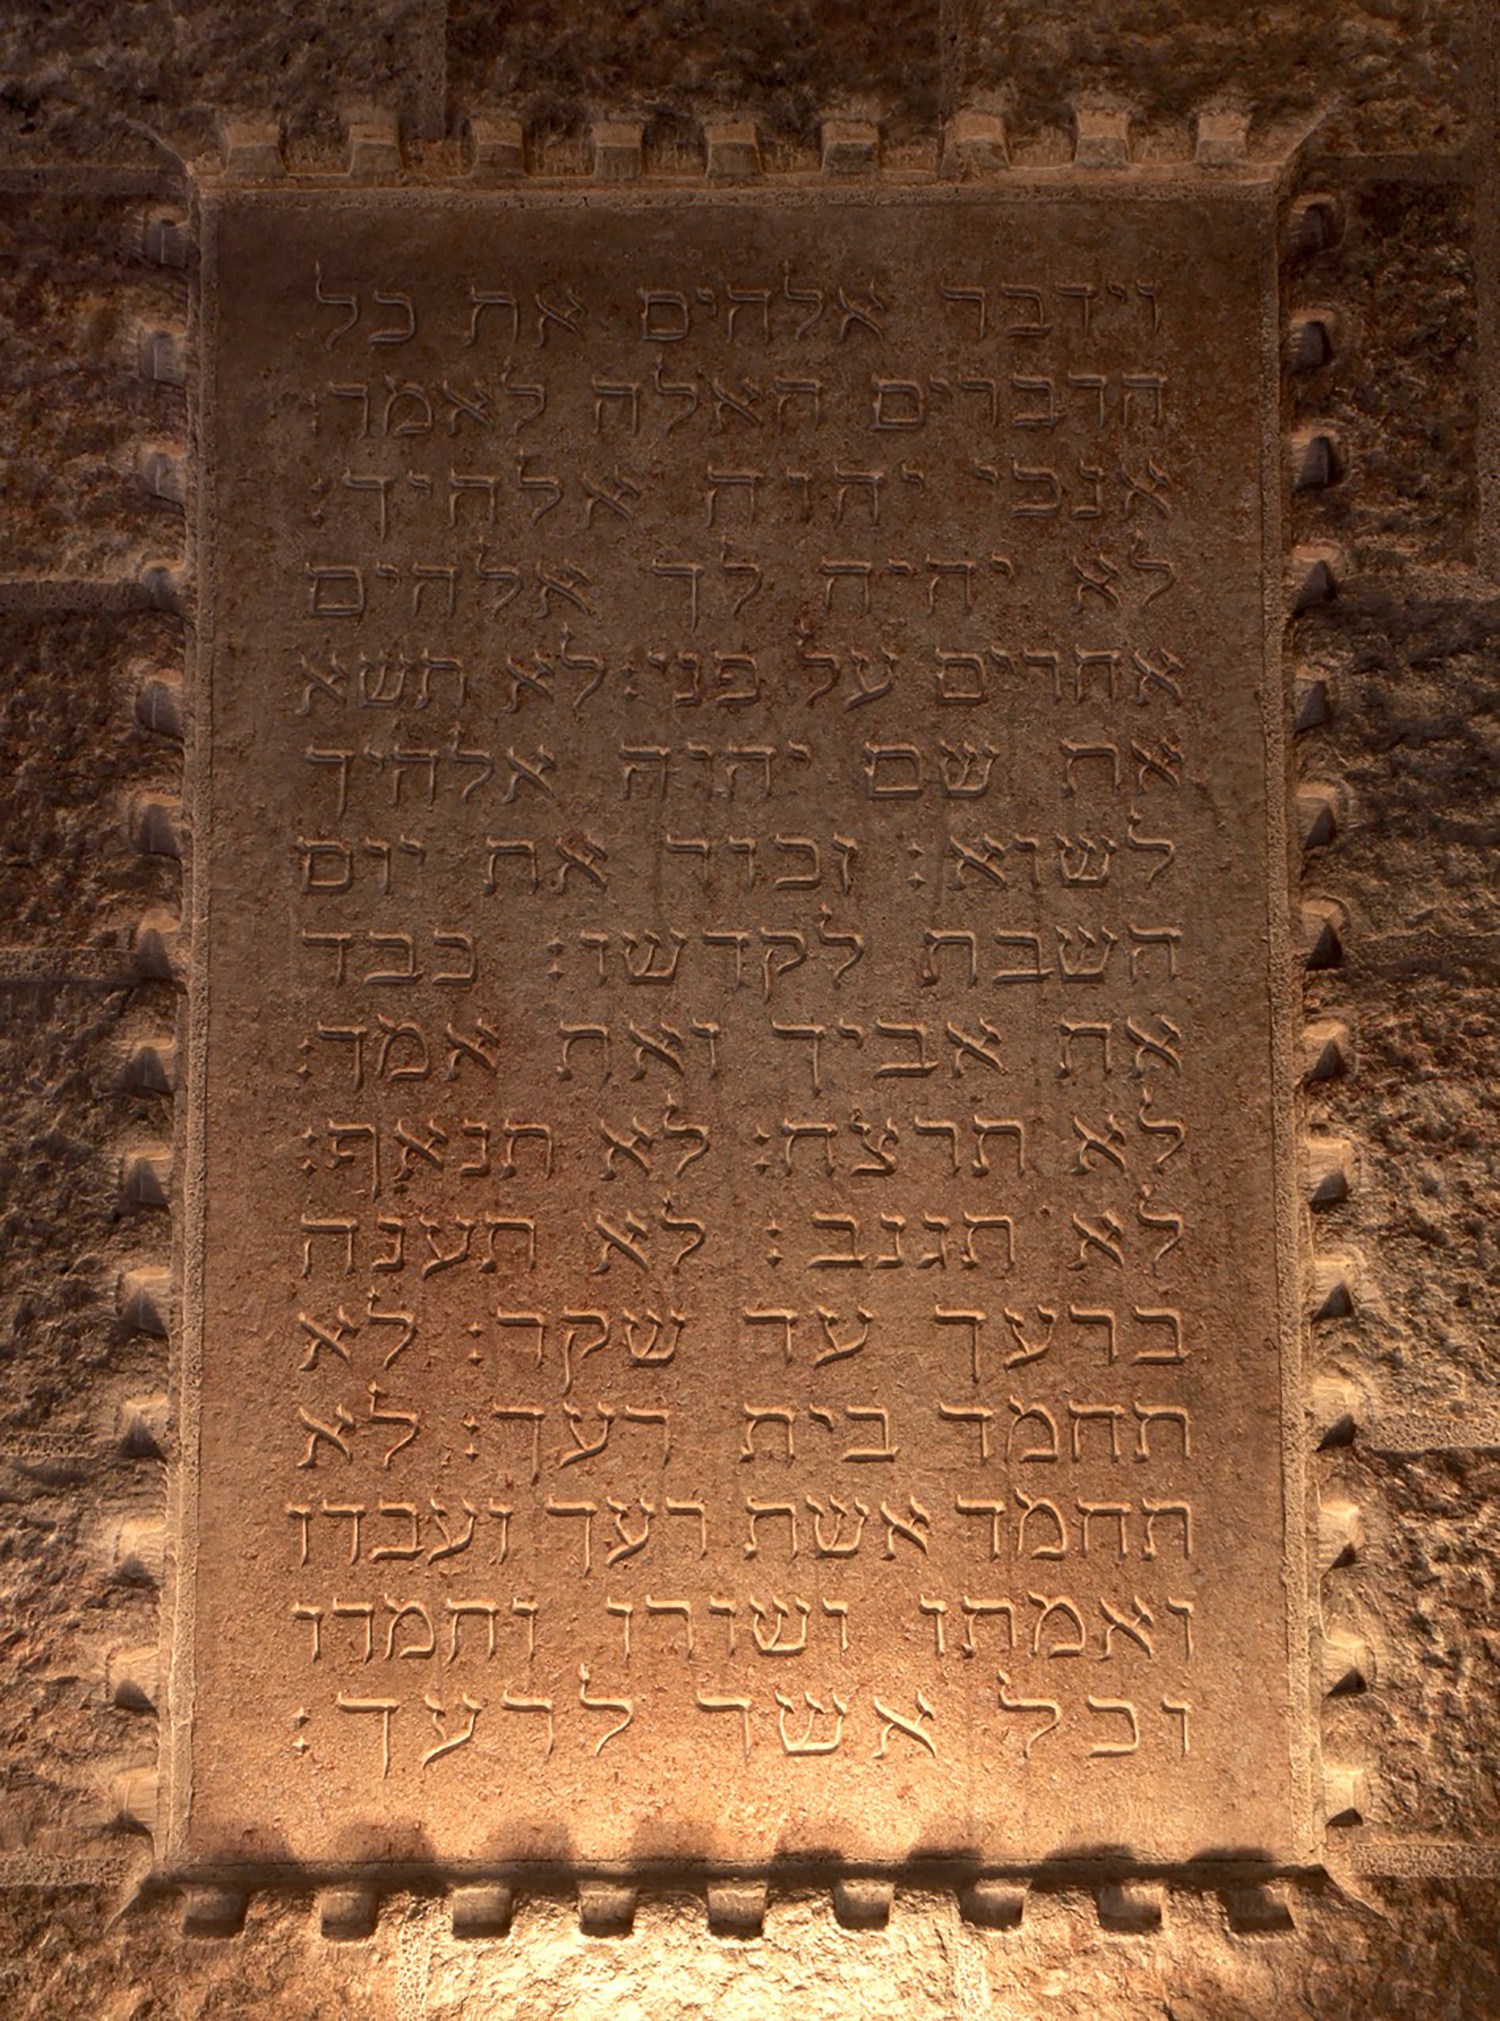 Figure 11: Carved in stone on the walls on either side of the Bible cabinet are two texts that are central to New Church belief and practice. The inscription on the left wall is a synopsis of the Ten Commandments from the Hebrew Bible.